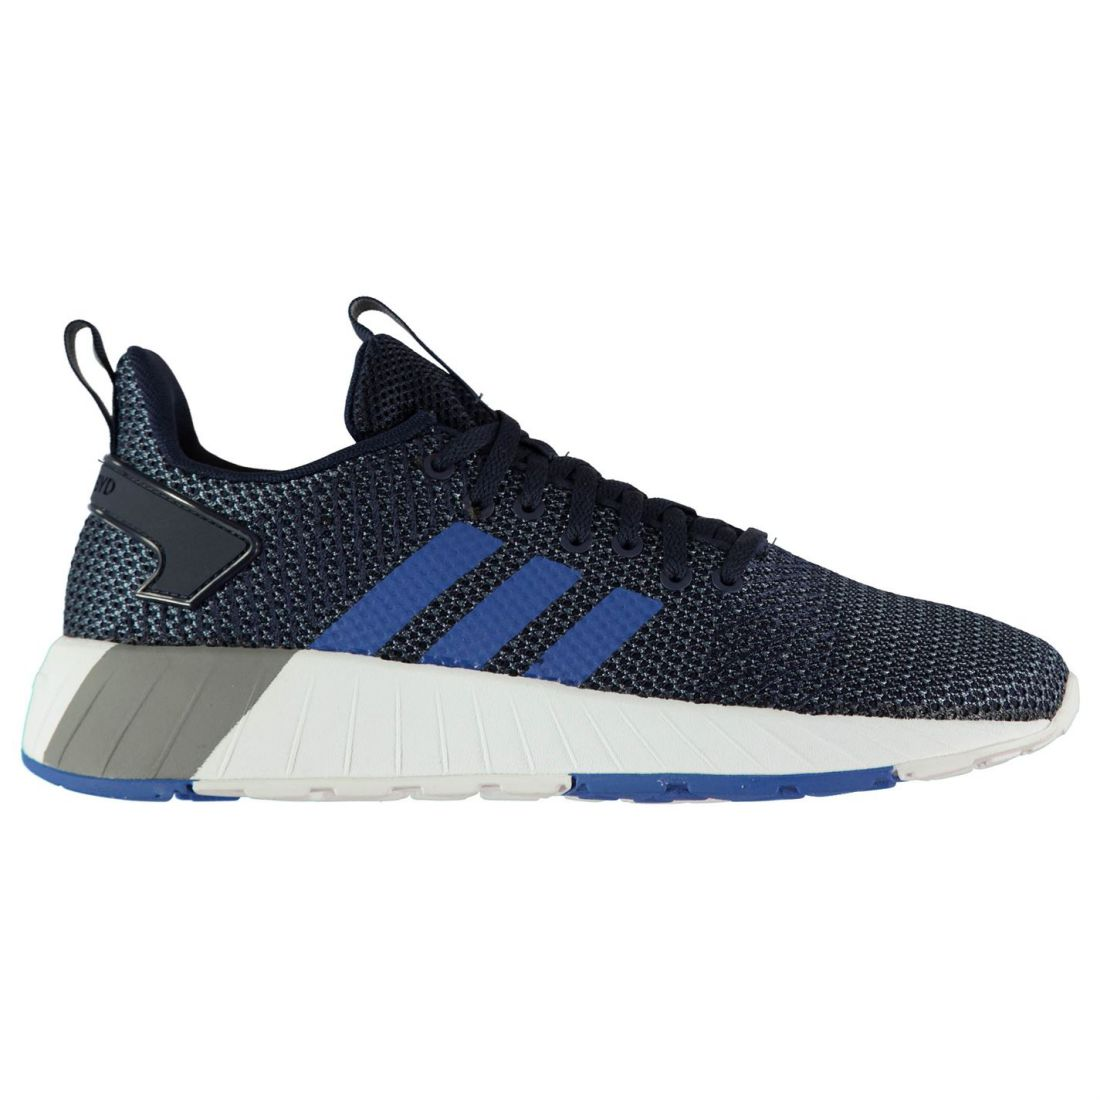 half off 72193 b7187 adidas Questar BYD 82 Sneakers Mens Gents Runners Laces Fastened Mesh Upper  2 2 di 5 ...